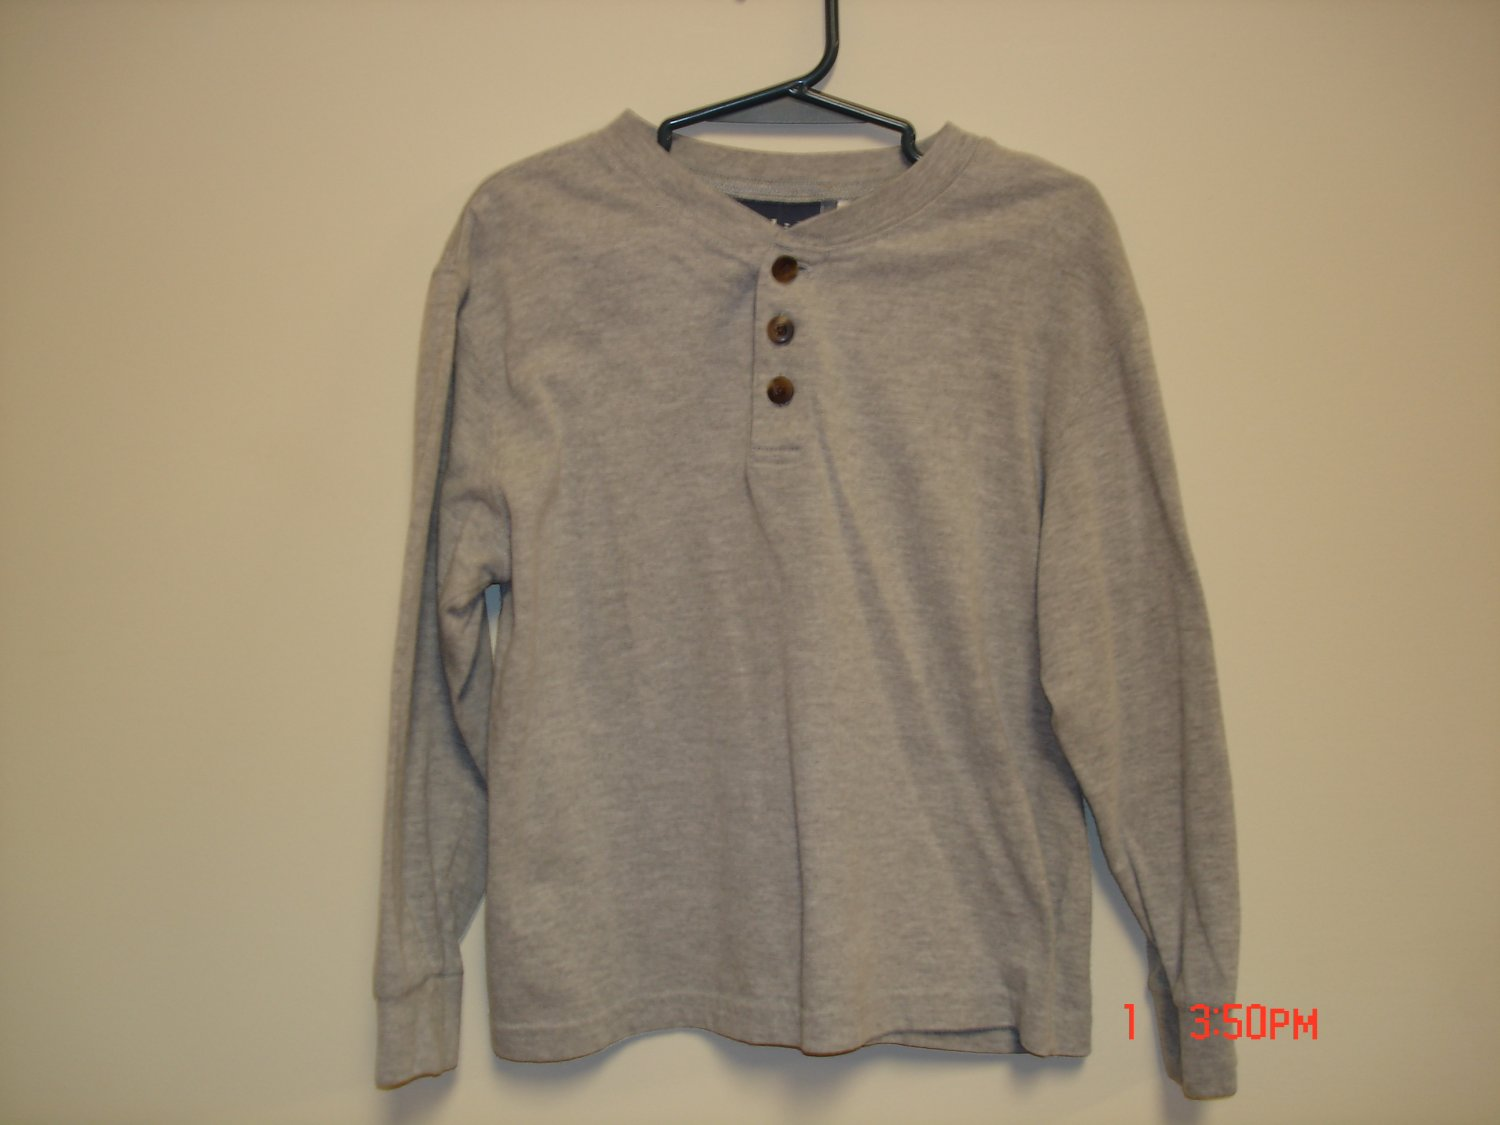 Long-Sleeve T-Shirt, Size 5/6